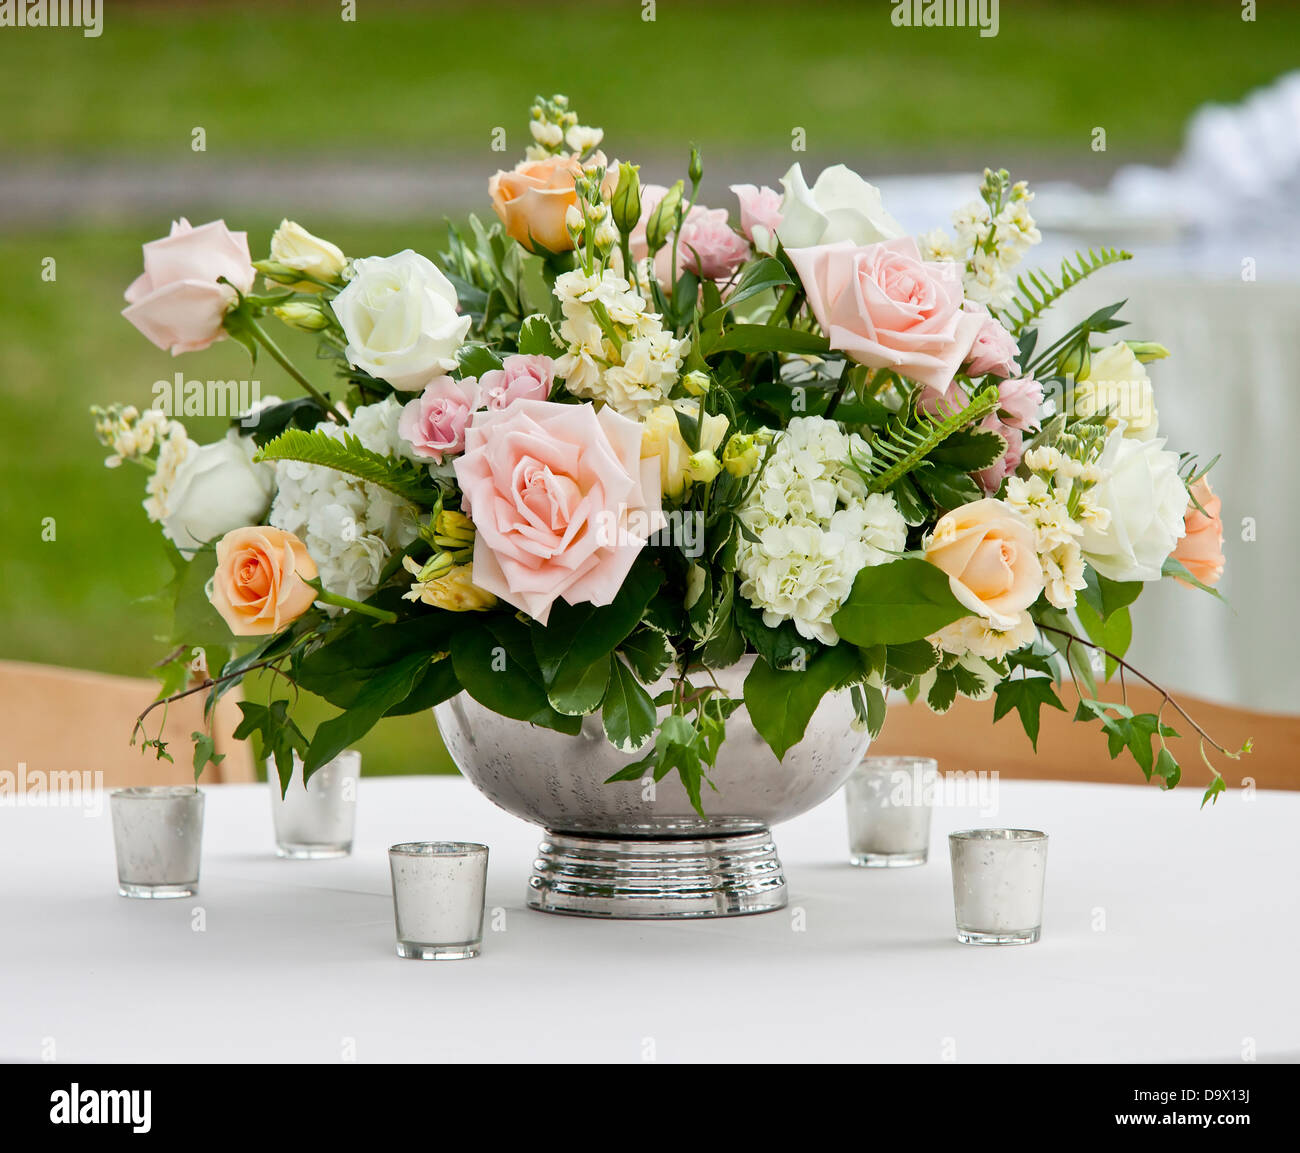 Flower arrangement in silver bowl with pink and white roses stock flower arrangement in silver bowl with pink and white roses mightylinksfo